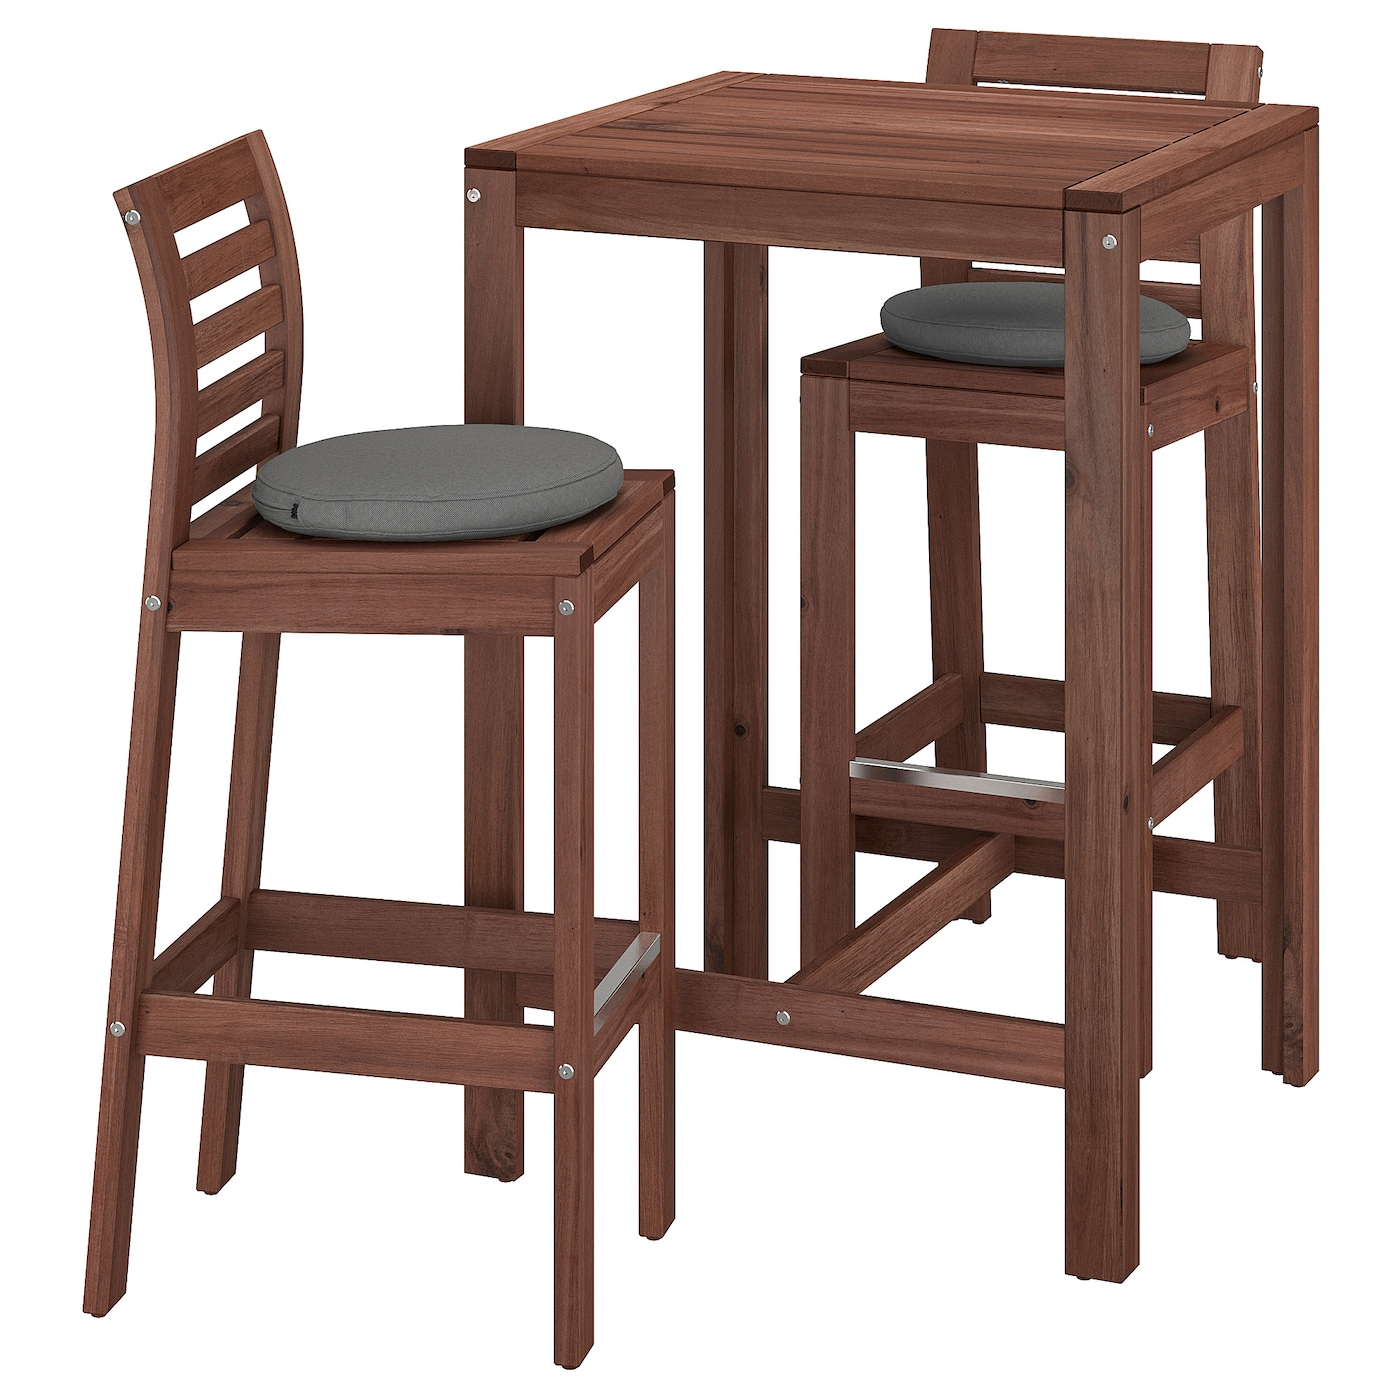 Image of: Applaro Bar Table And 2 Bar Stools Outdoor Brown Stained Froson Duvholmen Dark Gray Ikea